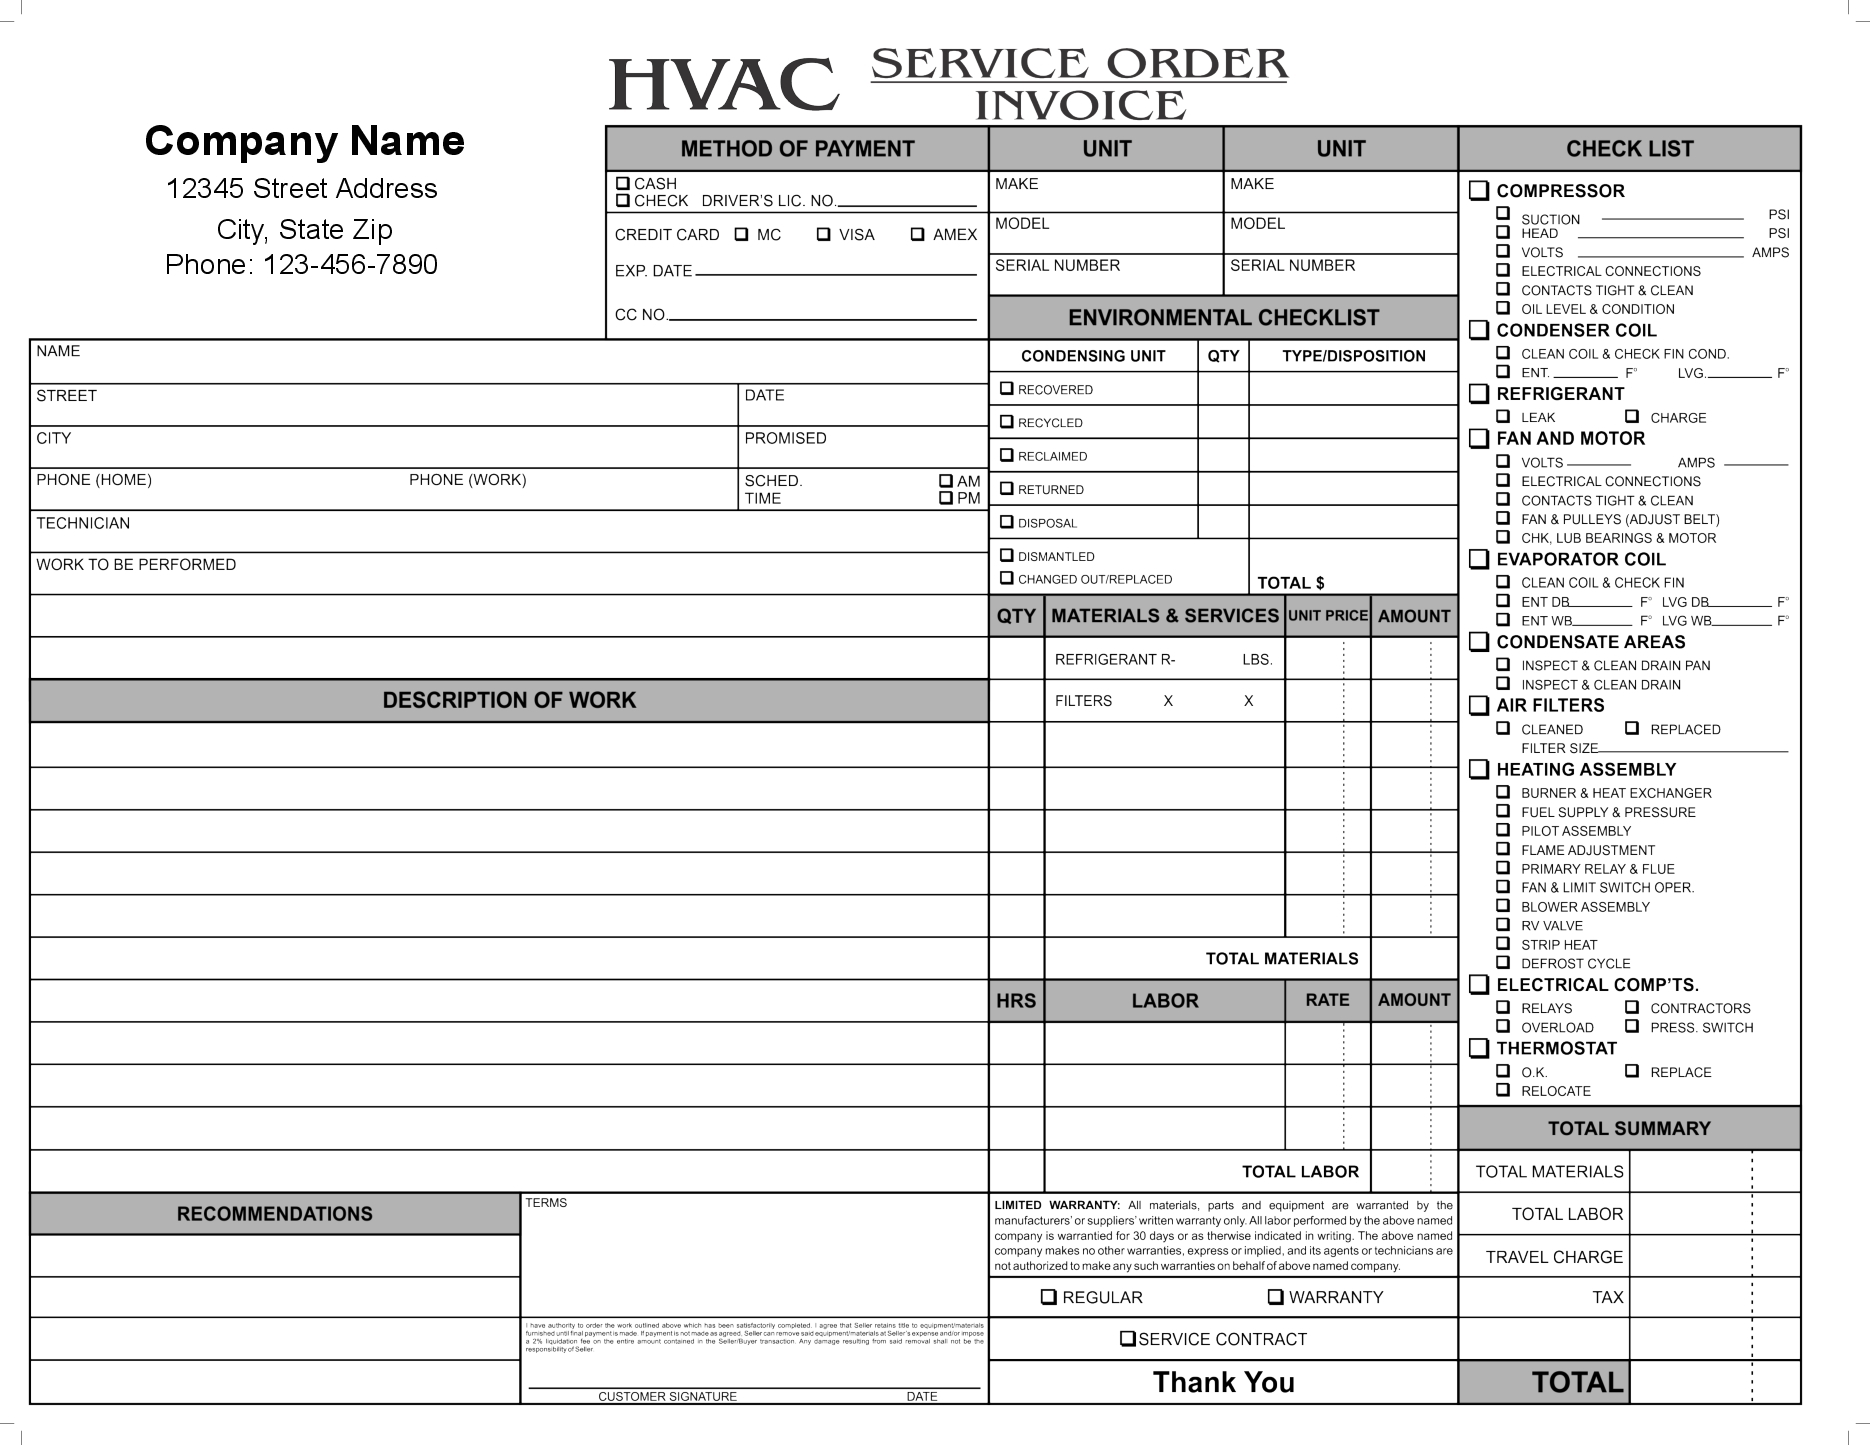 carbonless forms hvac service order invoice